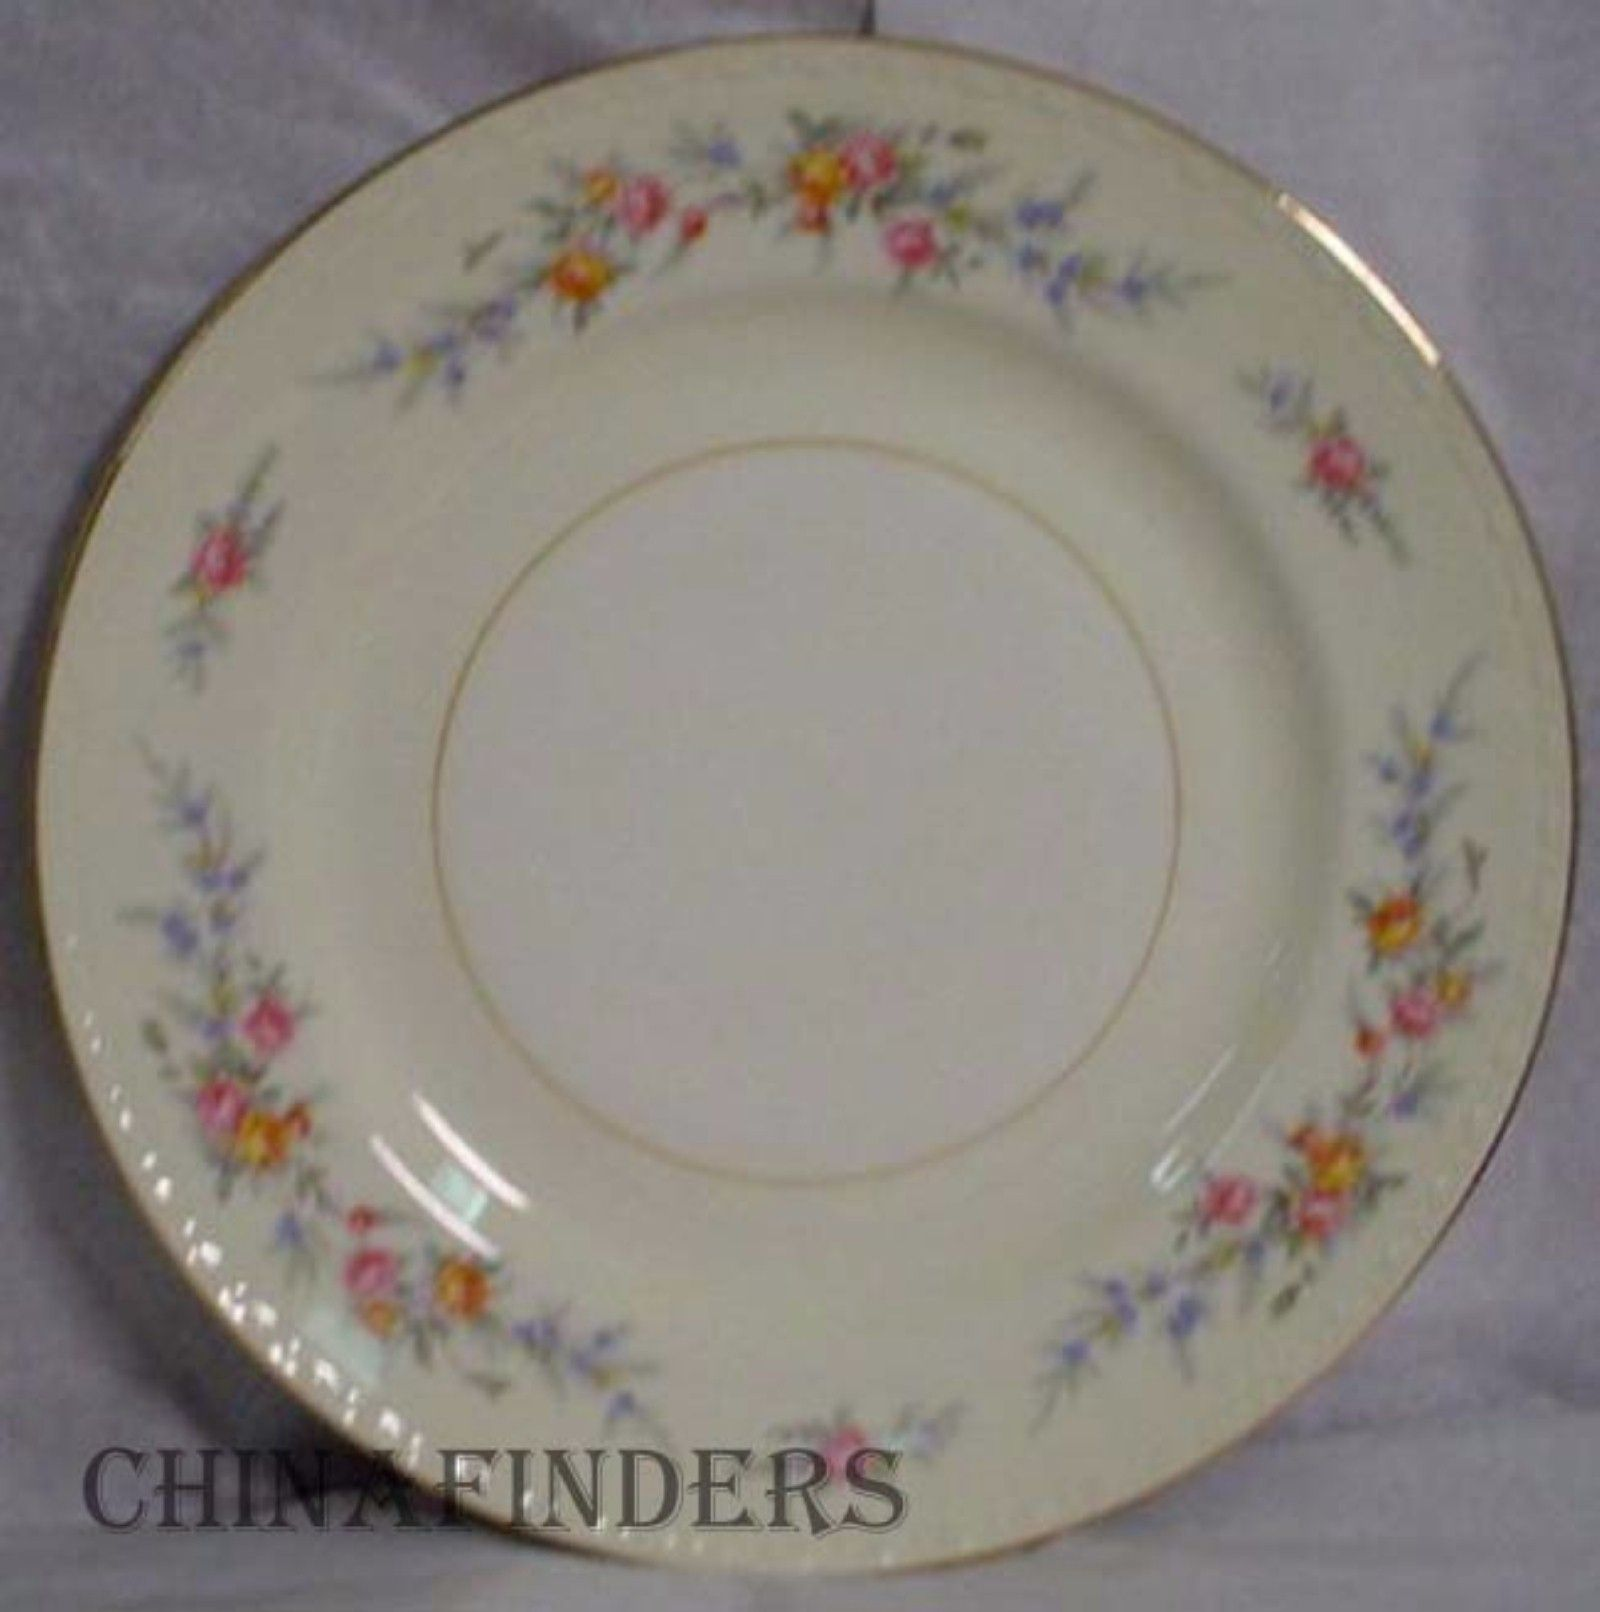 Antique Dishes Homer Laughlin | Details about HOMER LAUGHLIN china CASHMERE pttrn DINNER PLATE & HOMER LAUGHLIN china CASHMERE pttrn DINNER PLATE | Homer laughlin ...